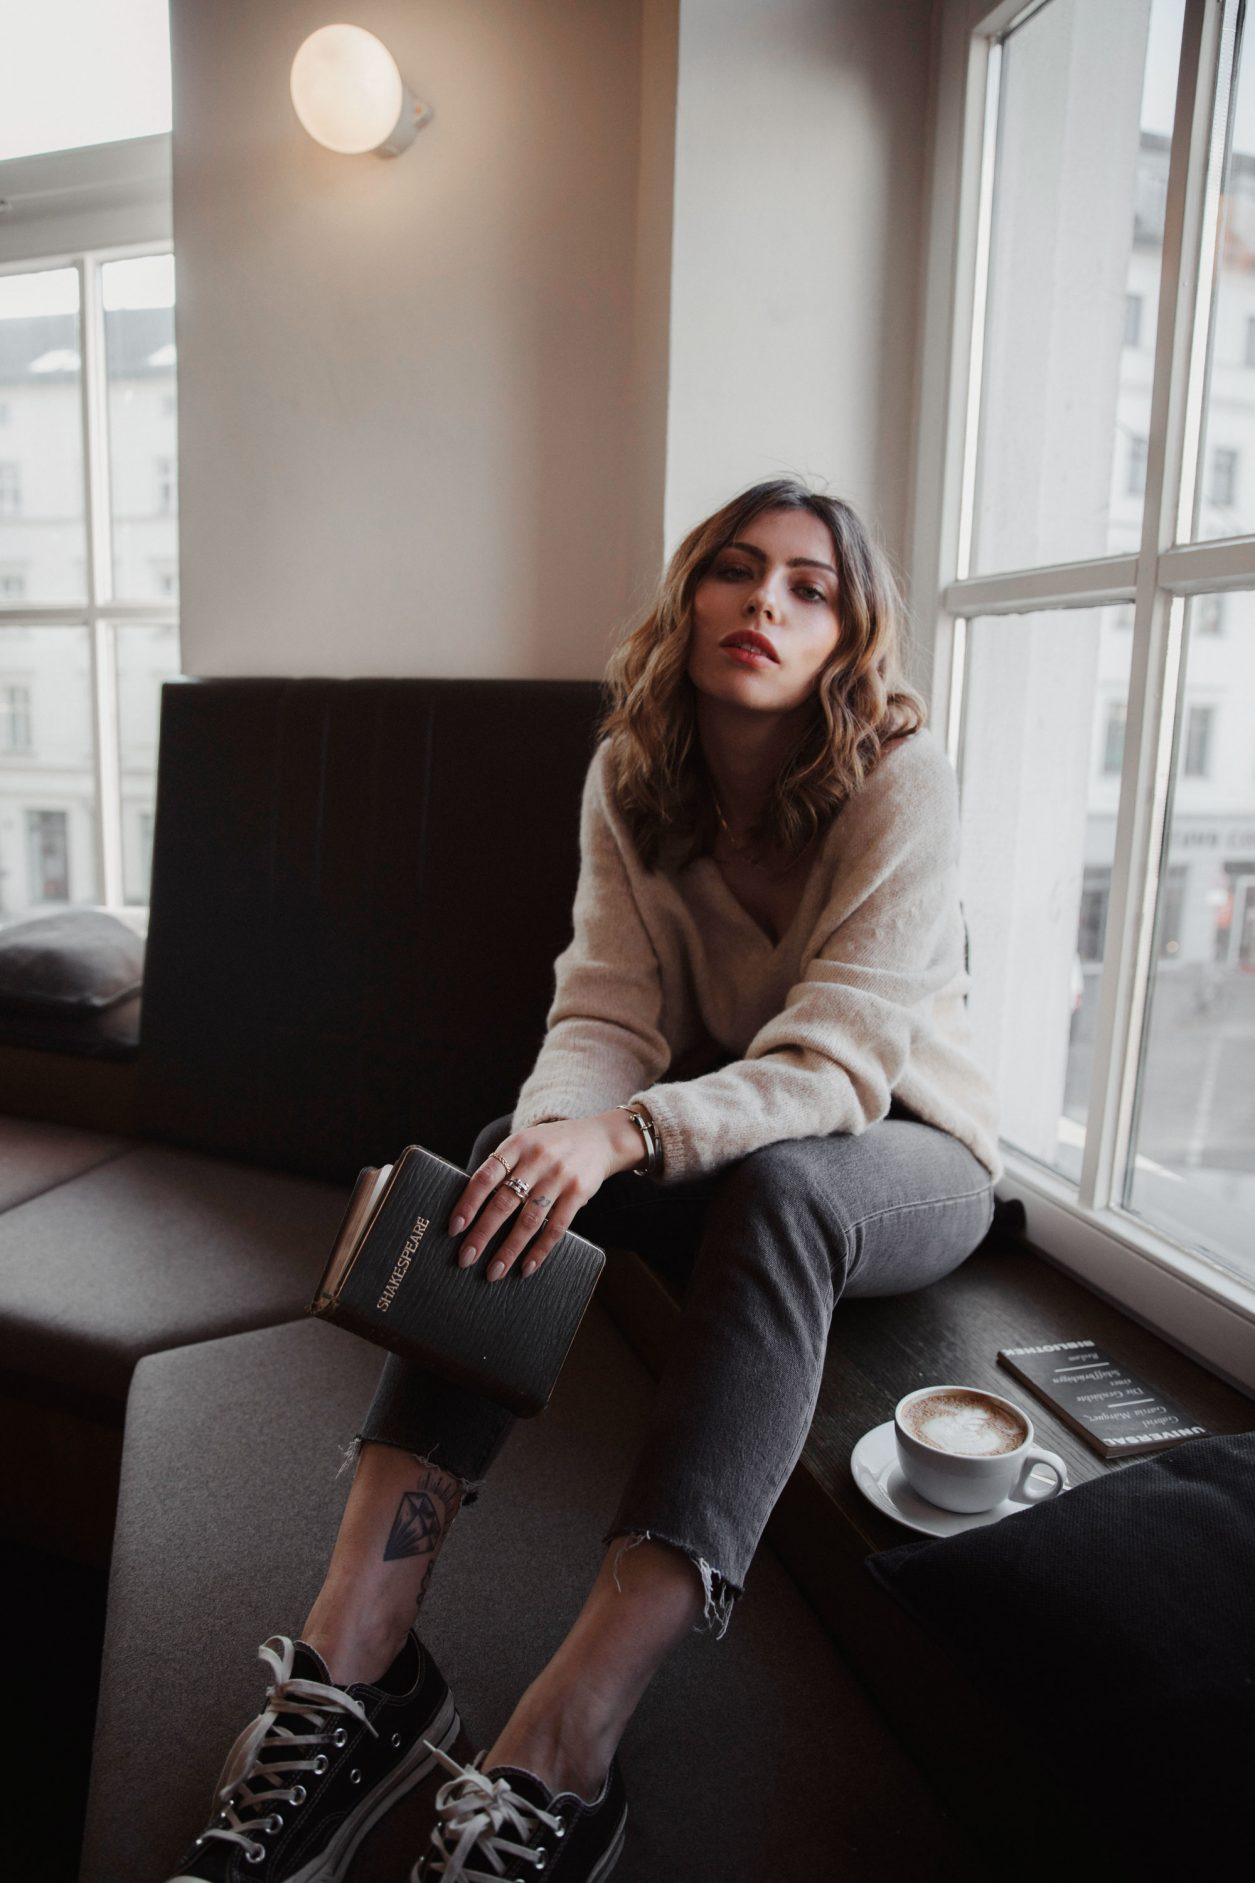 Masha Sedgwick drinking coffee in cafe & co working space St. Oberholz in Berlin Mitte | style: relaxed, comfy | Sunday column